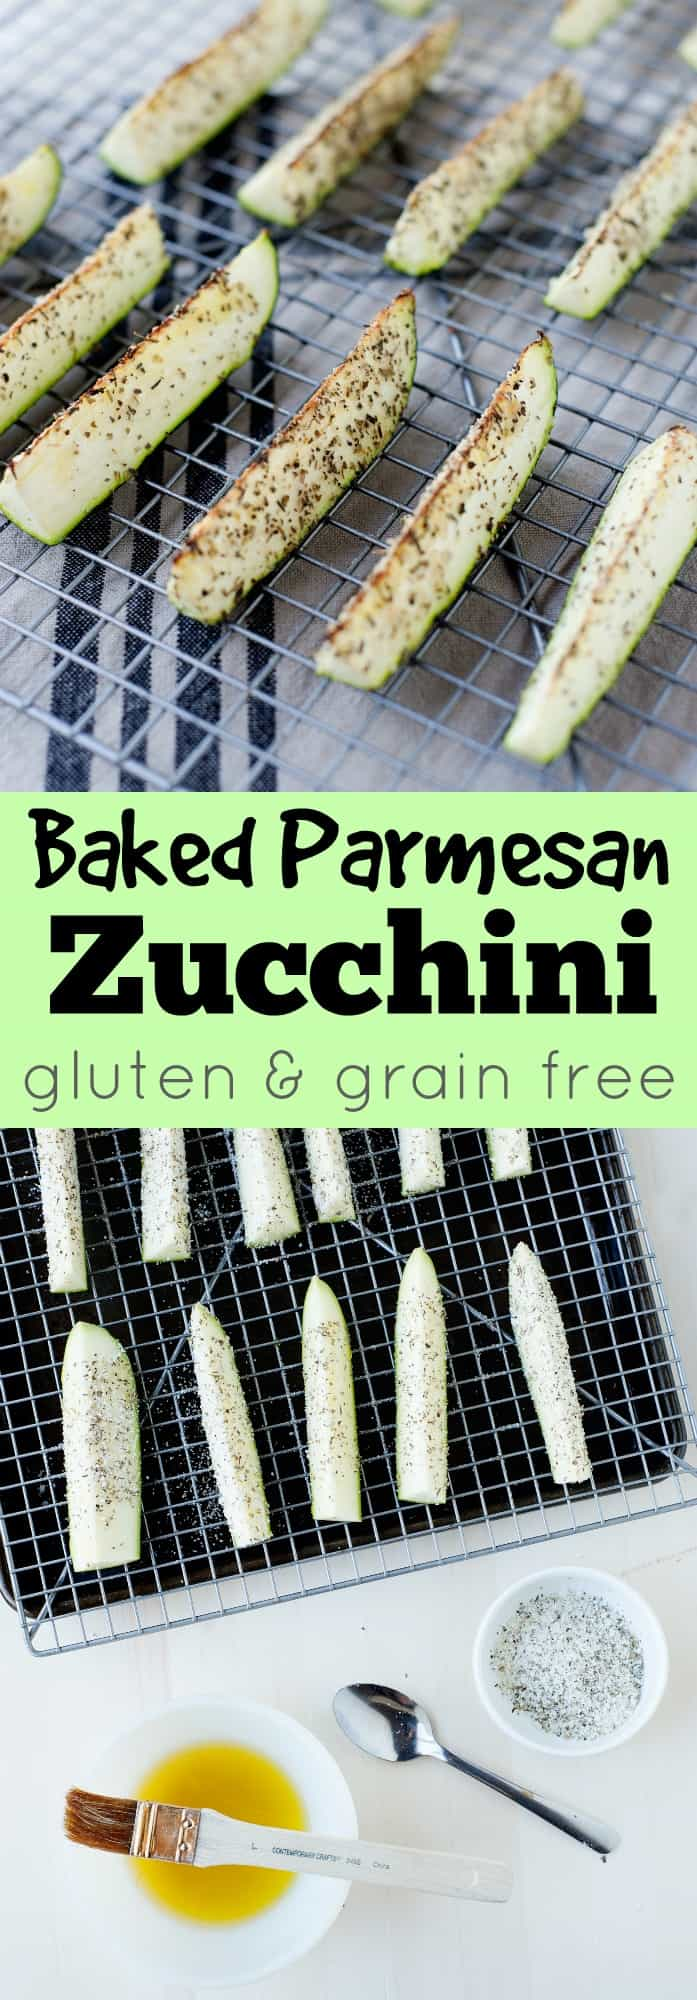 Baked Parmesan Zucchini Sticks: The perfect appetizer or side for your backyard bbq or family meal.